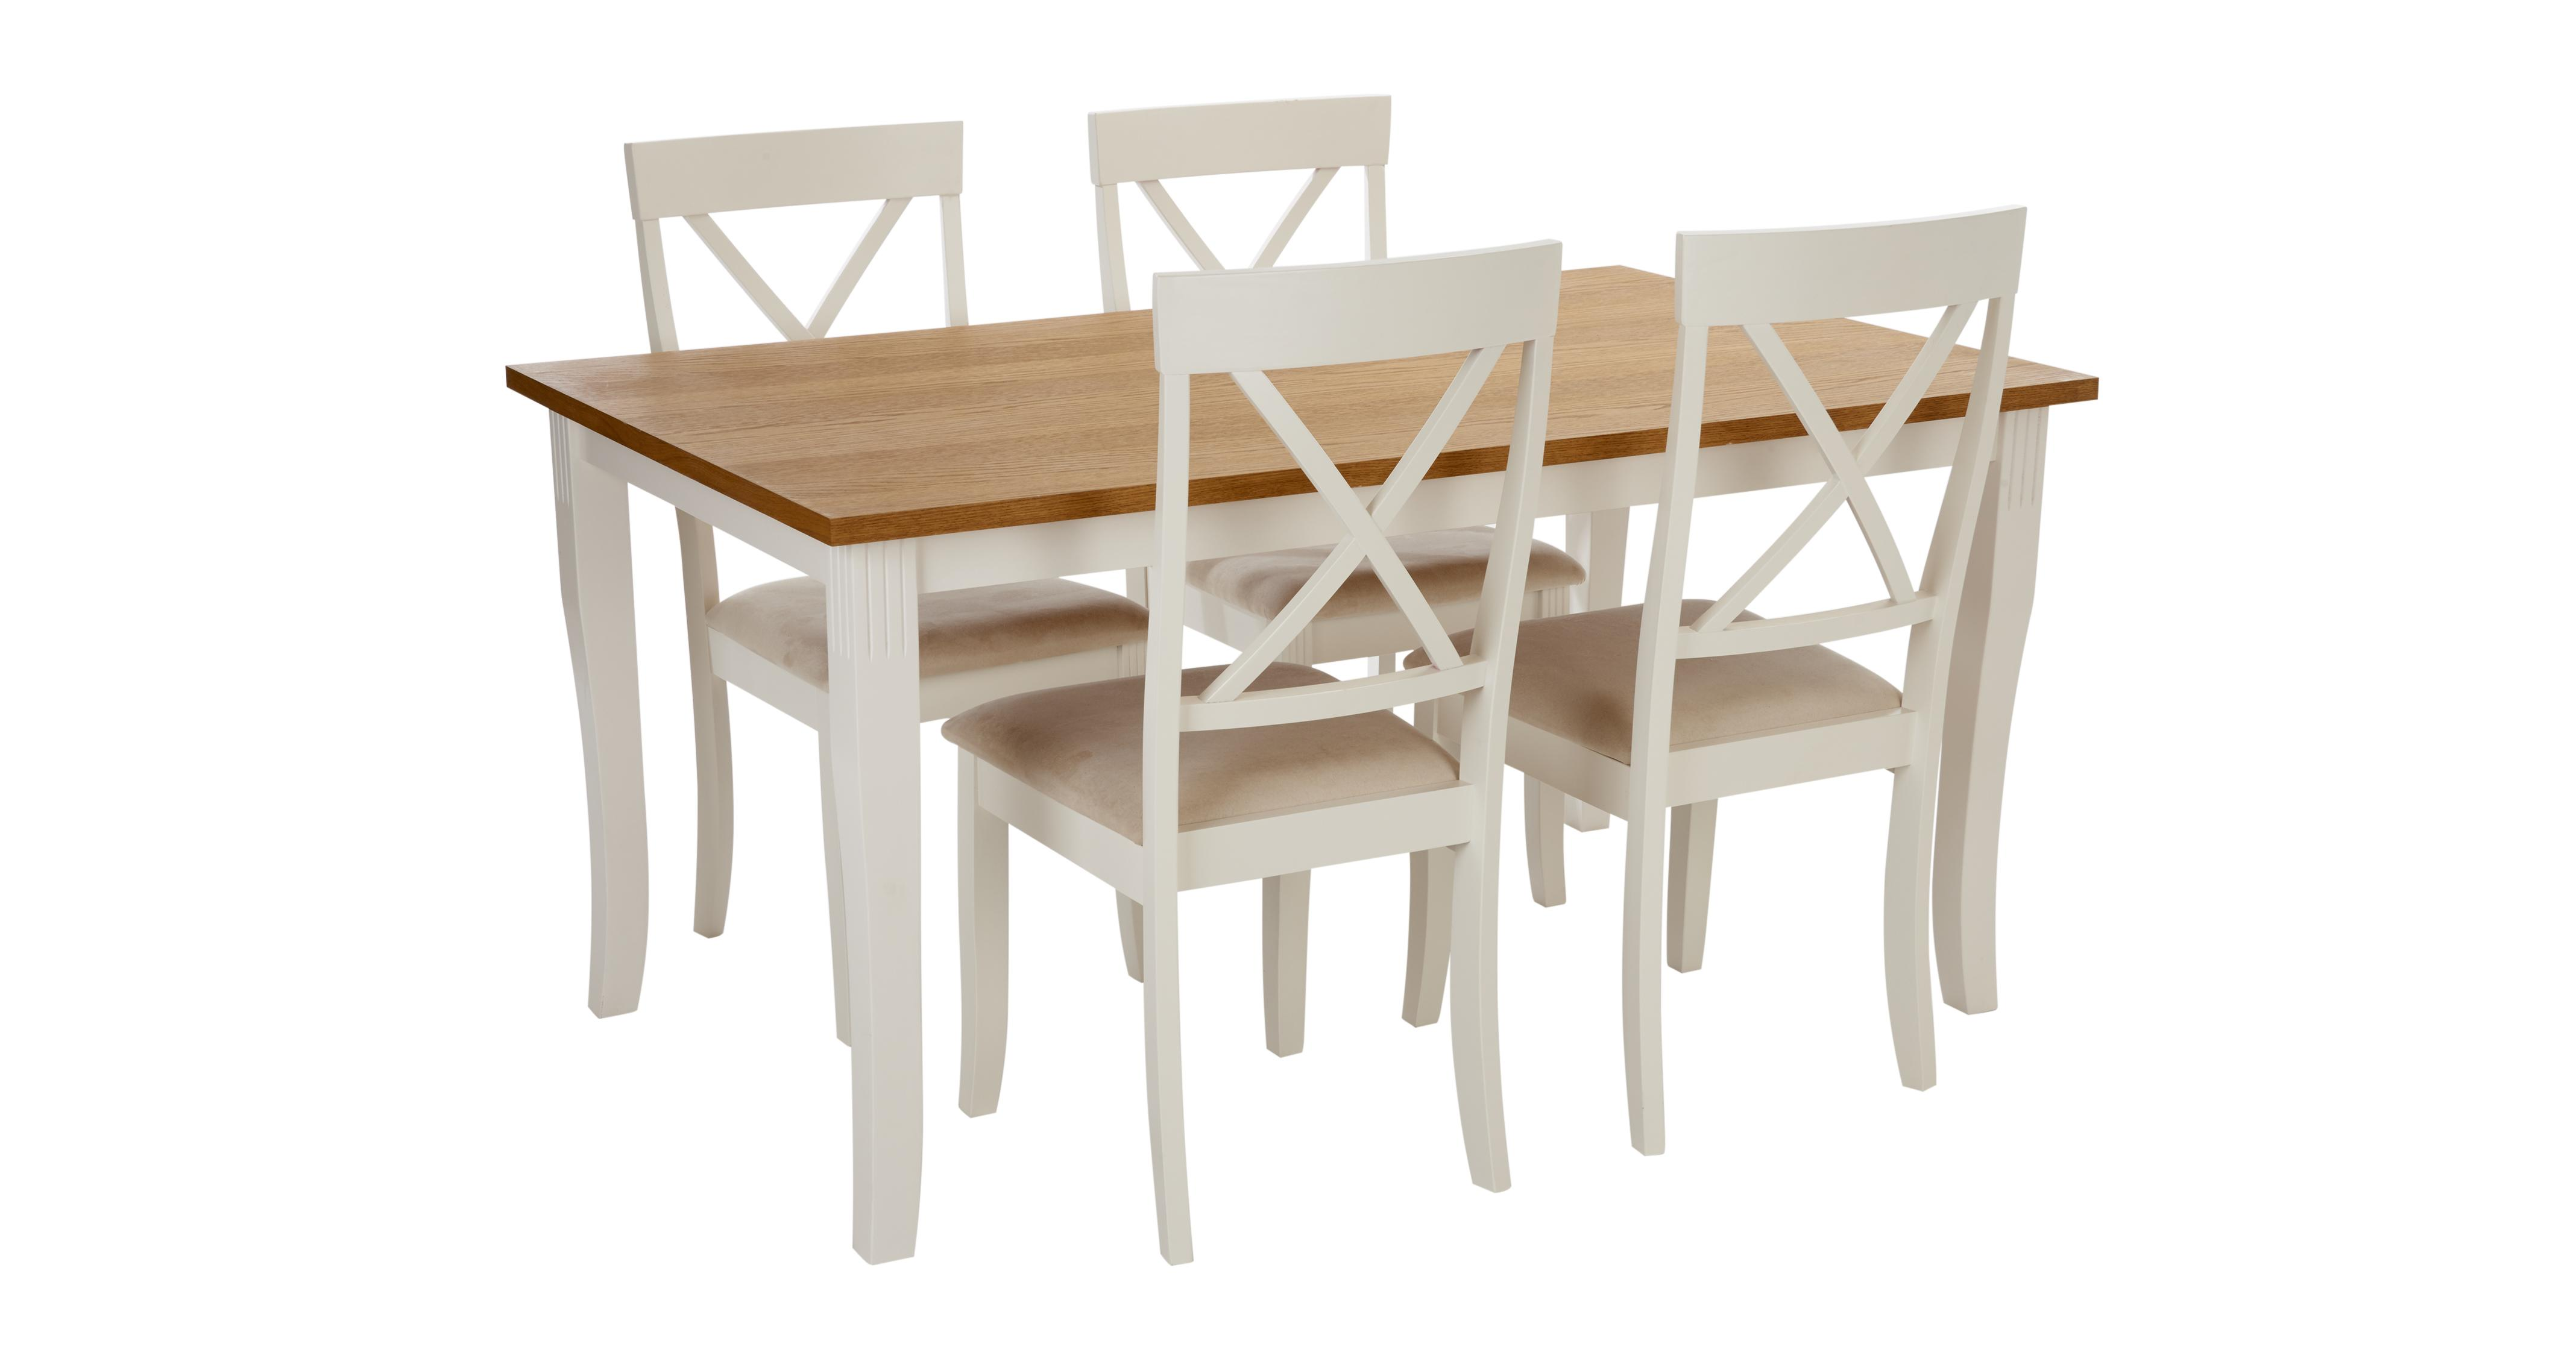 Evesham rectangular dining table set of 4 chairs dfs for White dining table and 4 chairs